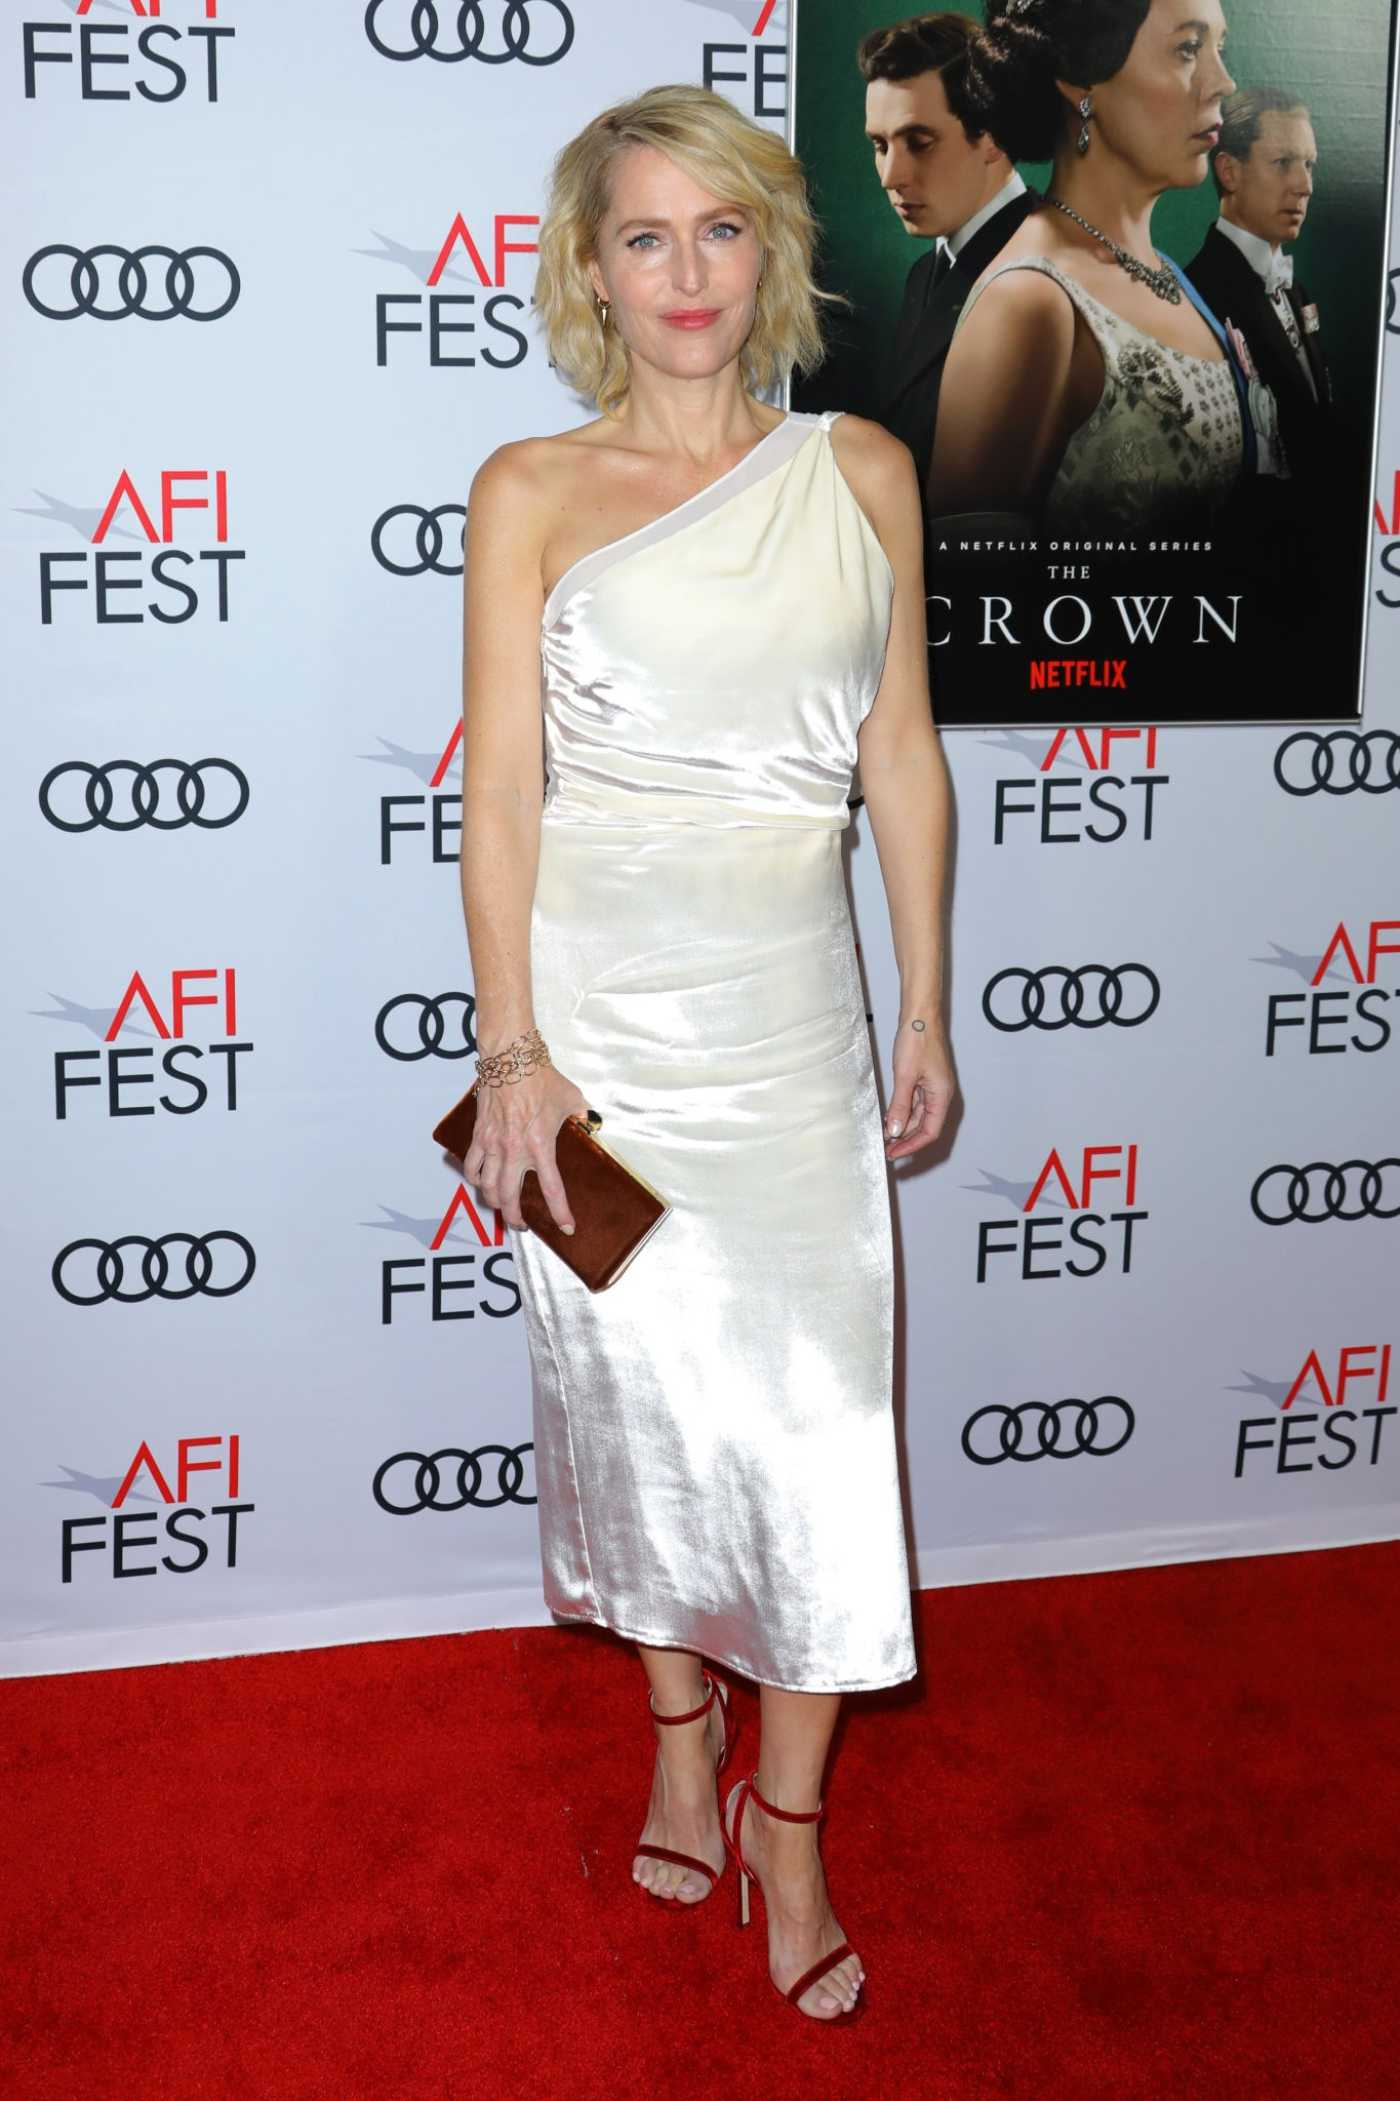 Gillian Anderson Attends The Crown AFI Gala Screening in Hollywood 11/16/2019